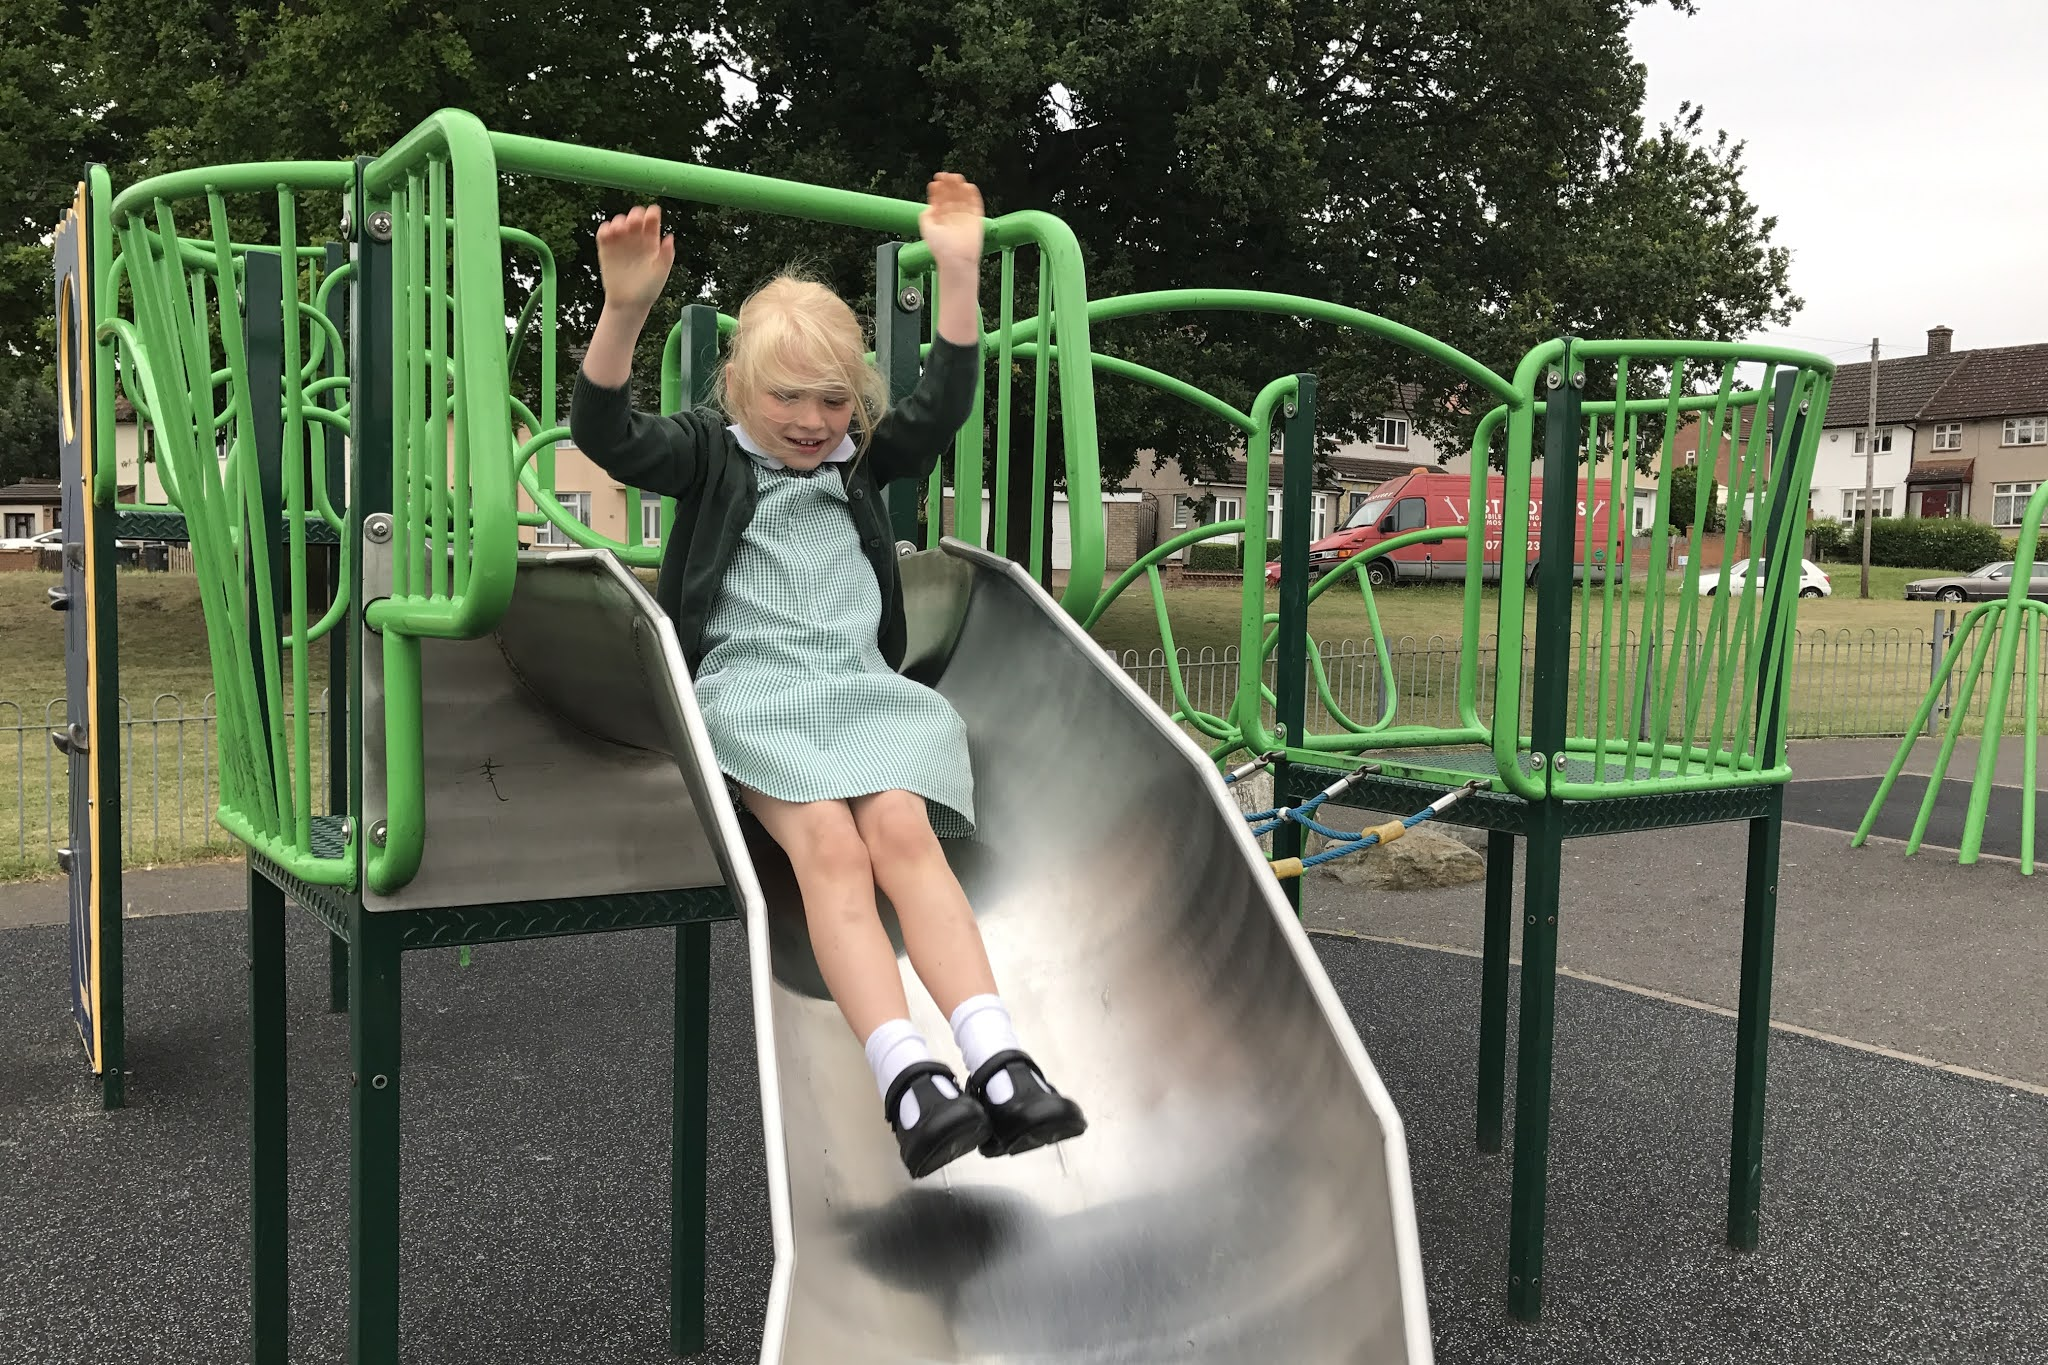 A climbing frame in a loughton playground with a girl going down a slide in school uniform